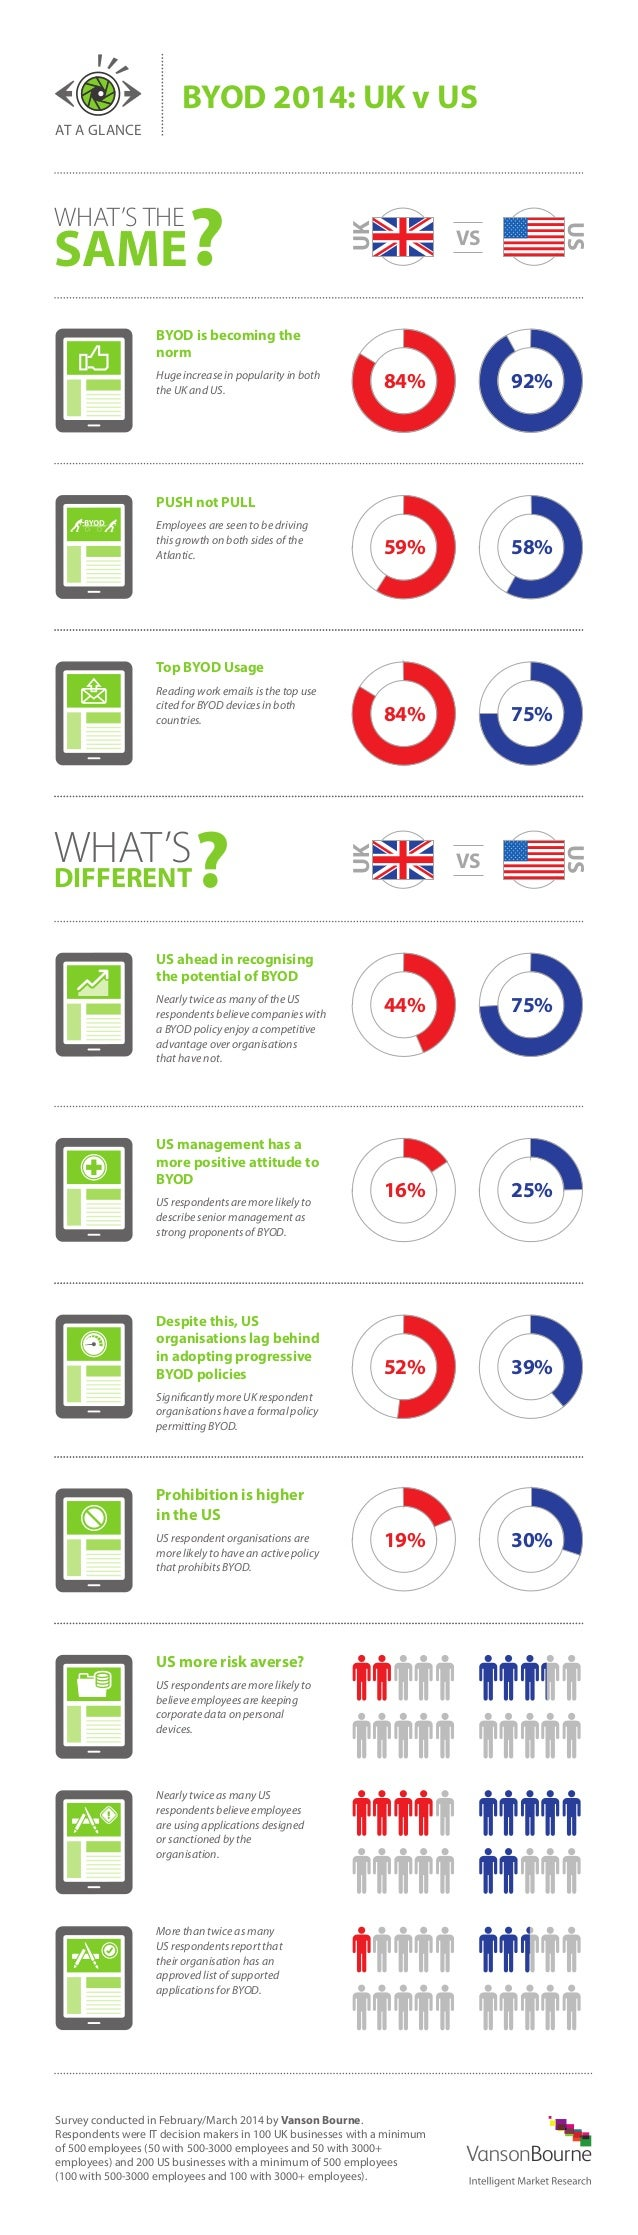 AT A GLANCE BYOD 2014: UK v US Survey conducted in February/March 2014 by Vanson Bourne. Respondents were IT decision make...